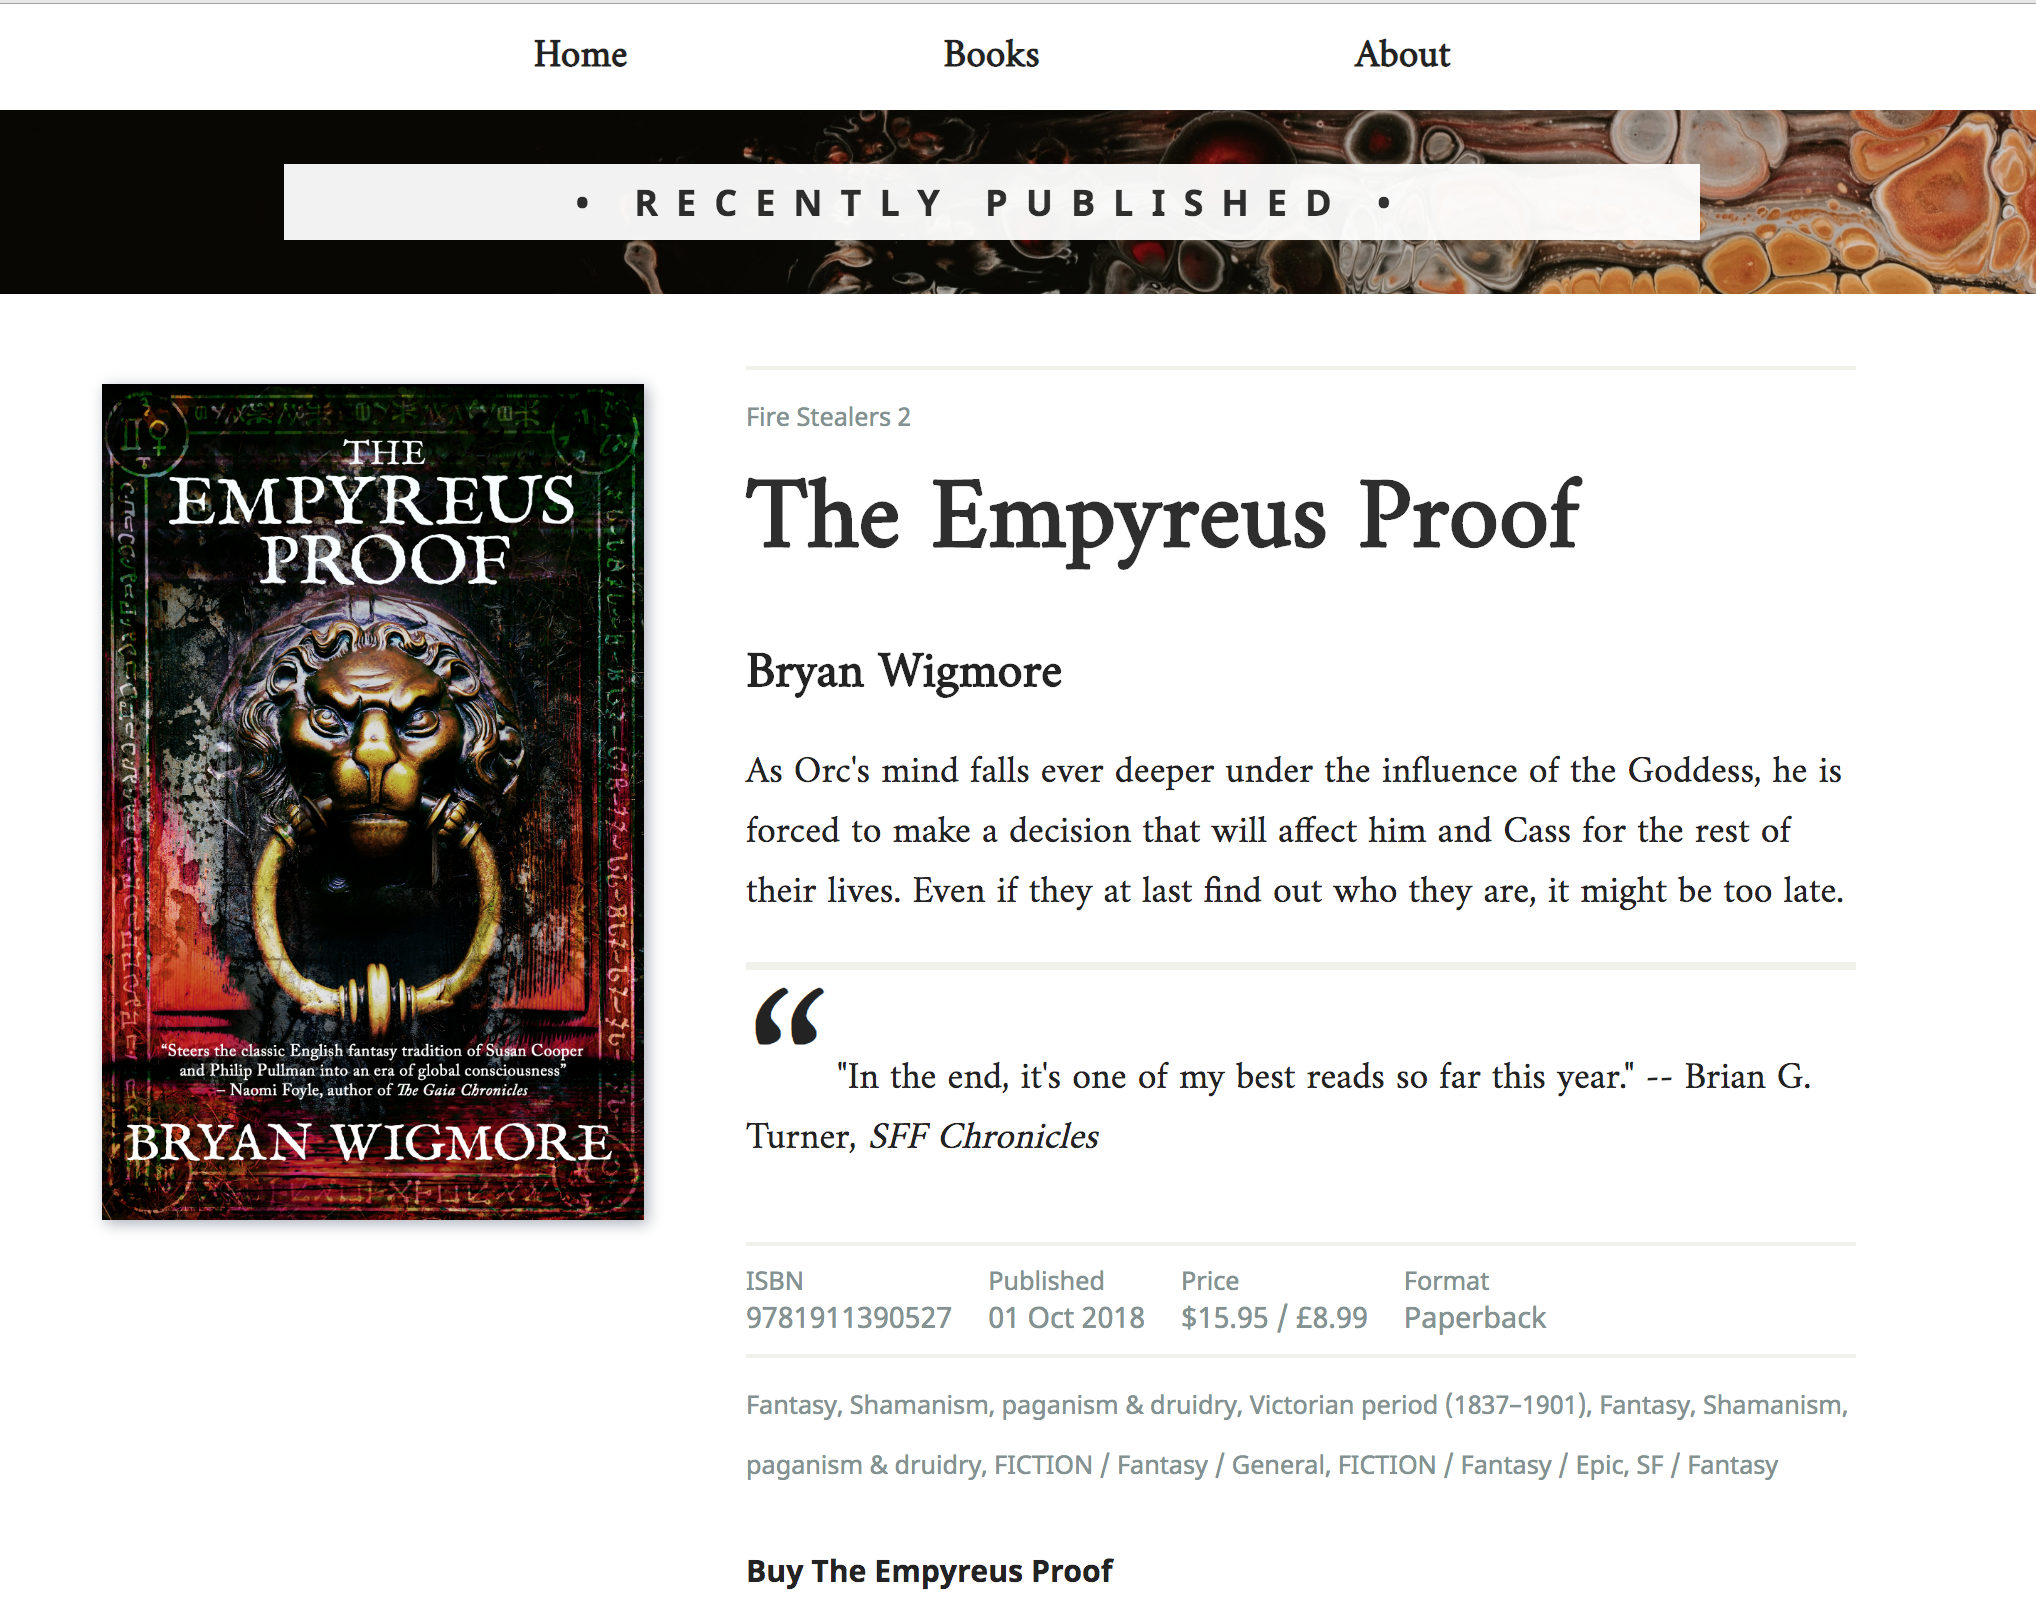 A screenshot of a really nicely laid out book page, with pricing, subject metadata, a well-designed cover, the blurb, the author names and the series, too, with a review quote.